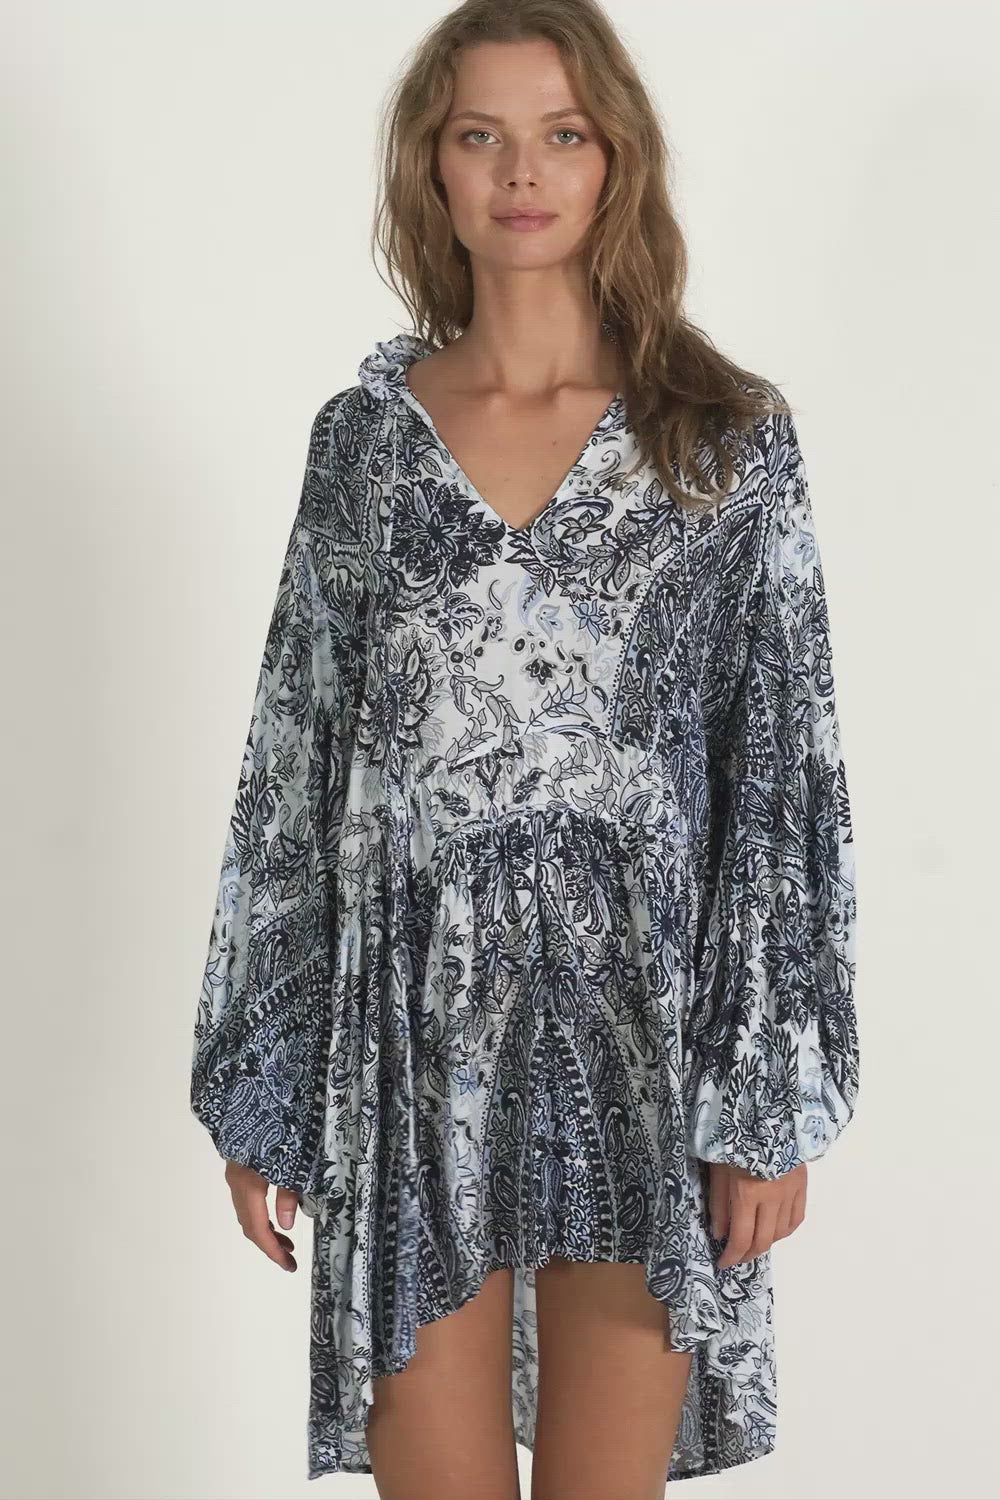 A woman wearing a paisley mini dress by Lilya for winter